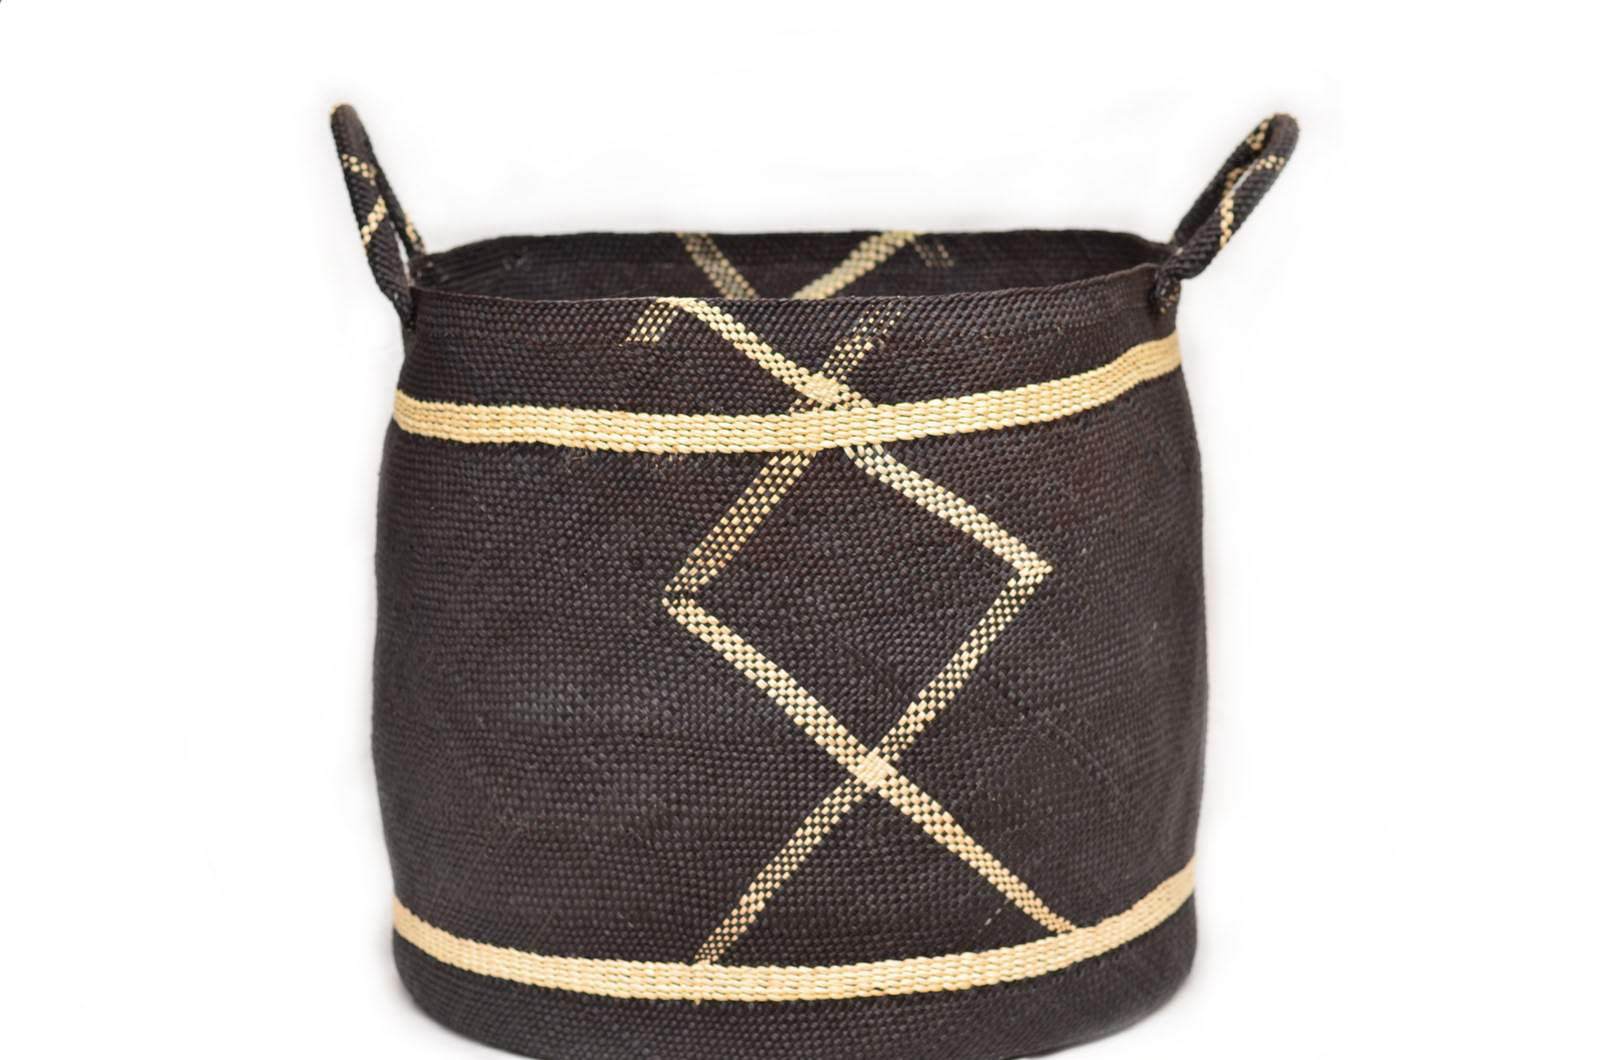 Large Woven Basket w/ Handles in Midnight Blue Iraca and Tan Pattern